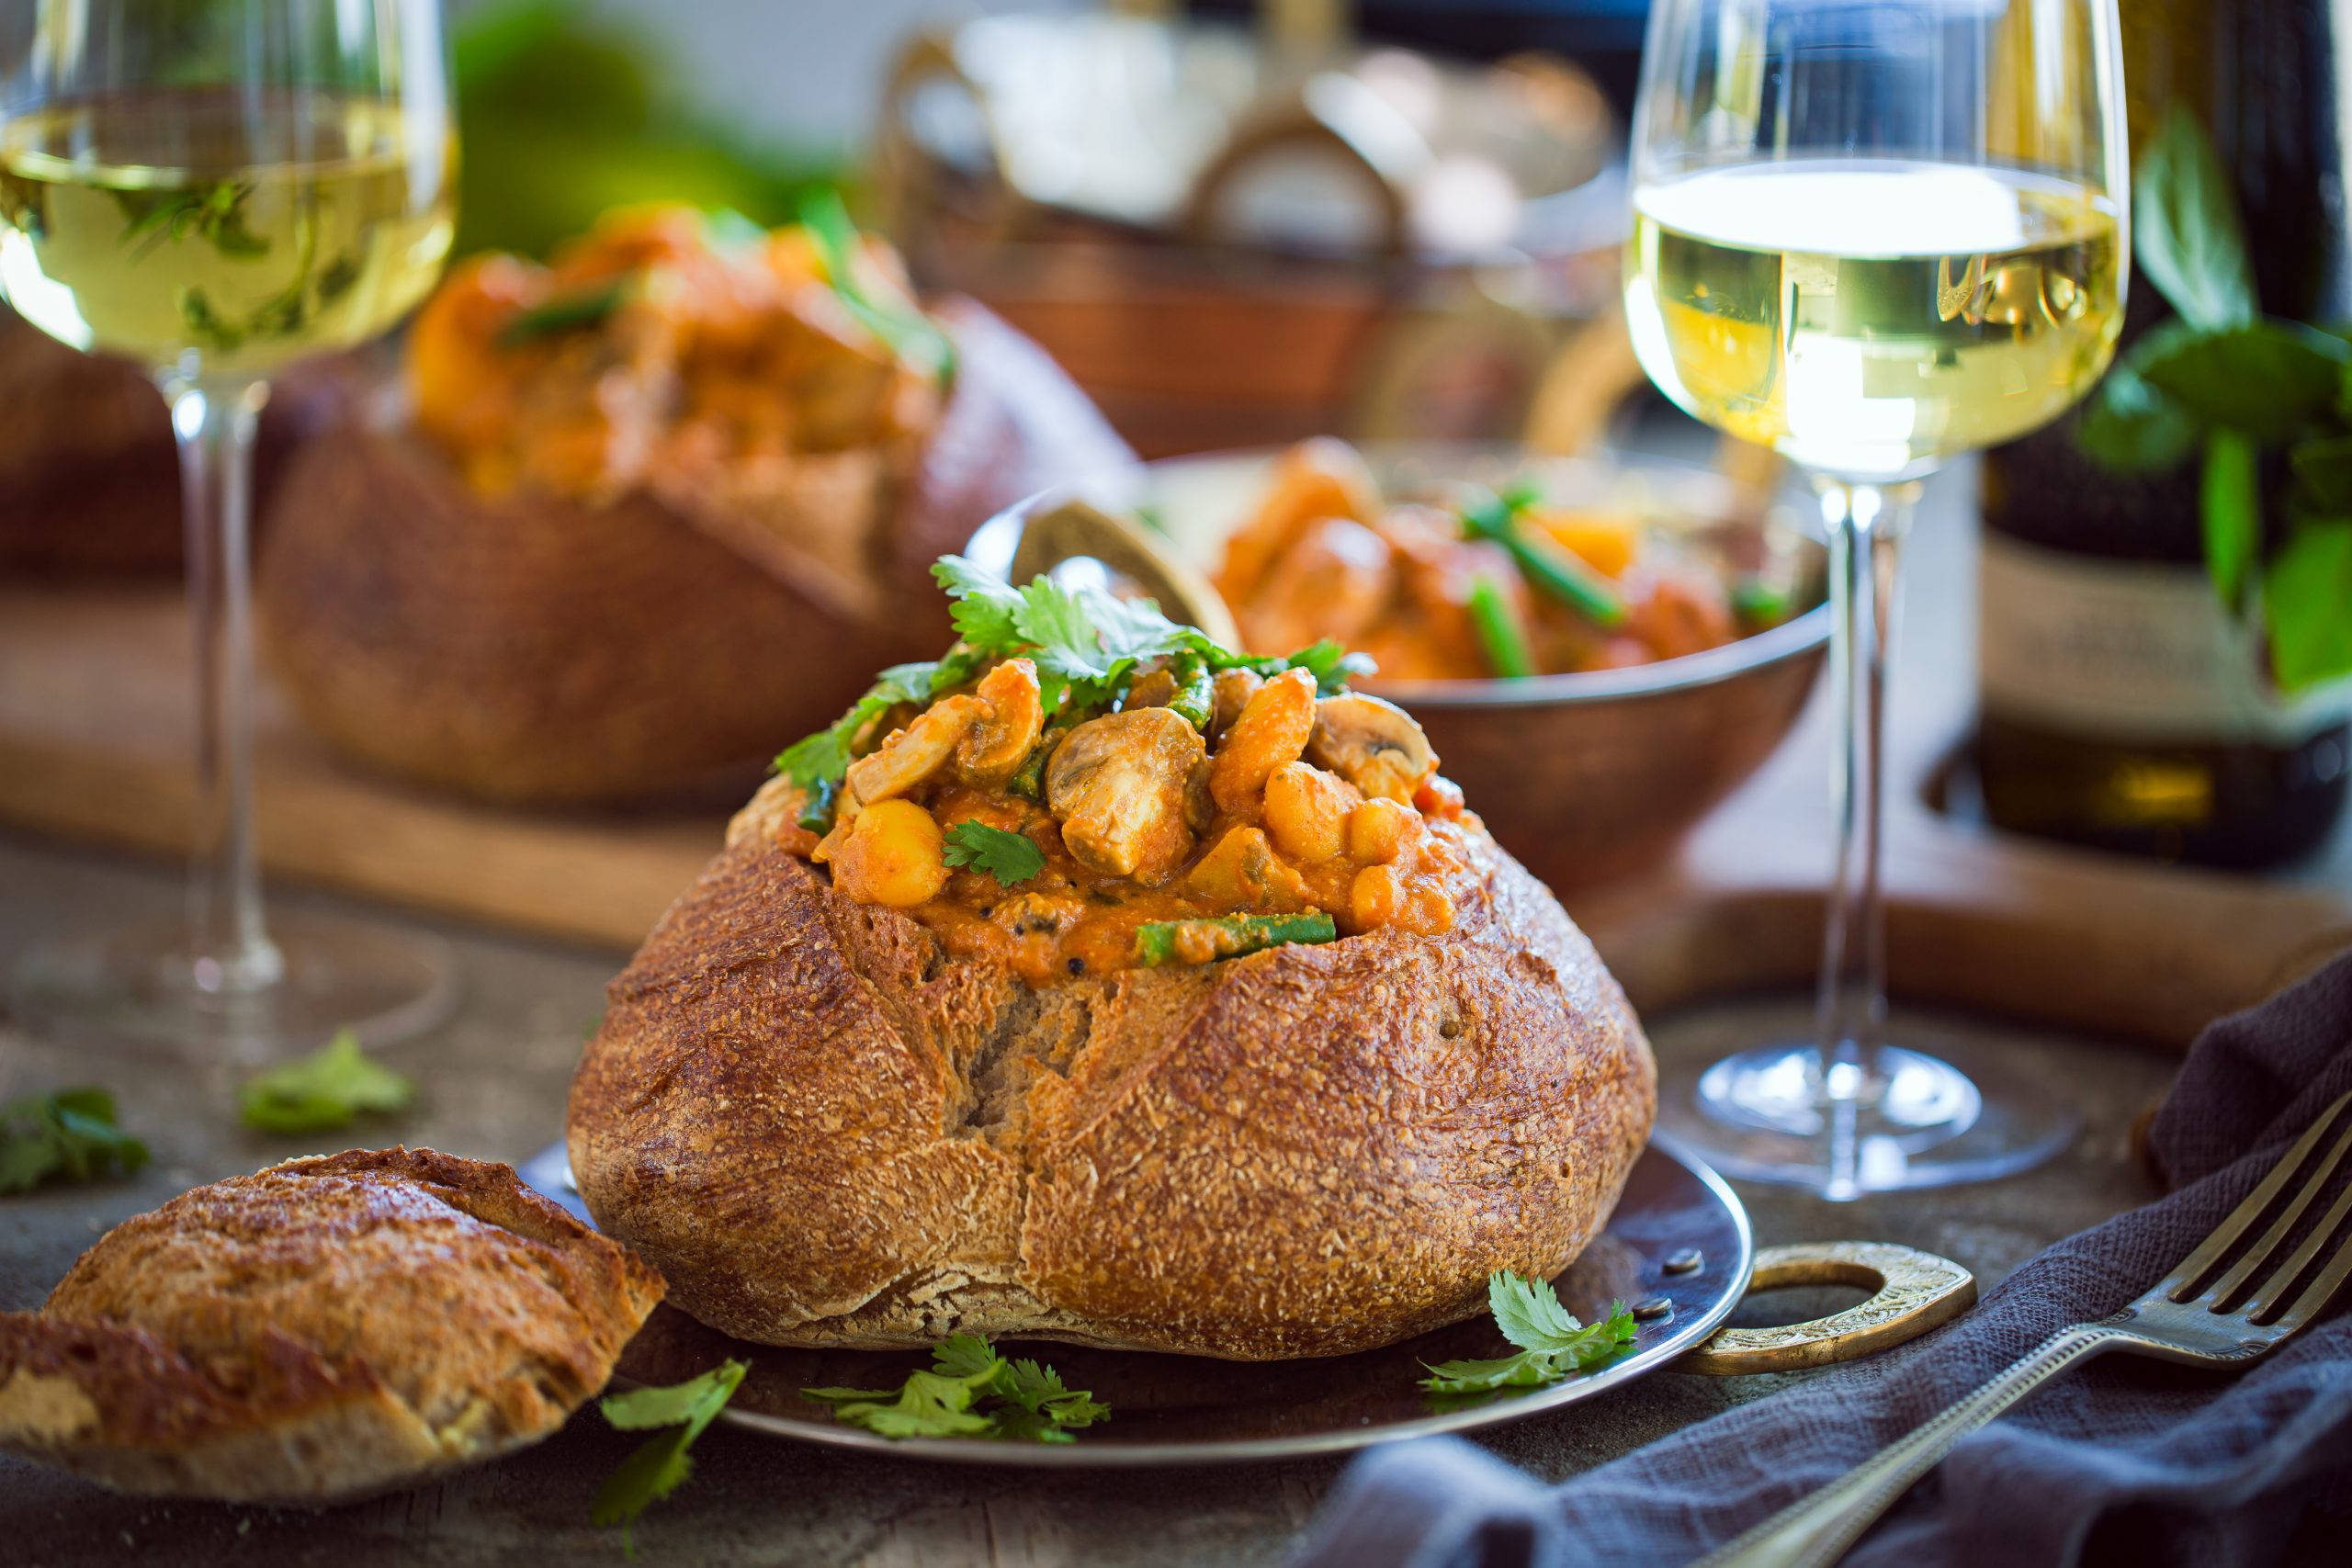 [FOOD] Mushroom Bunny Chow Paired with Paul Cluver Riesling – Recipe